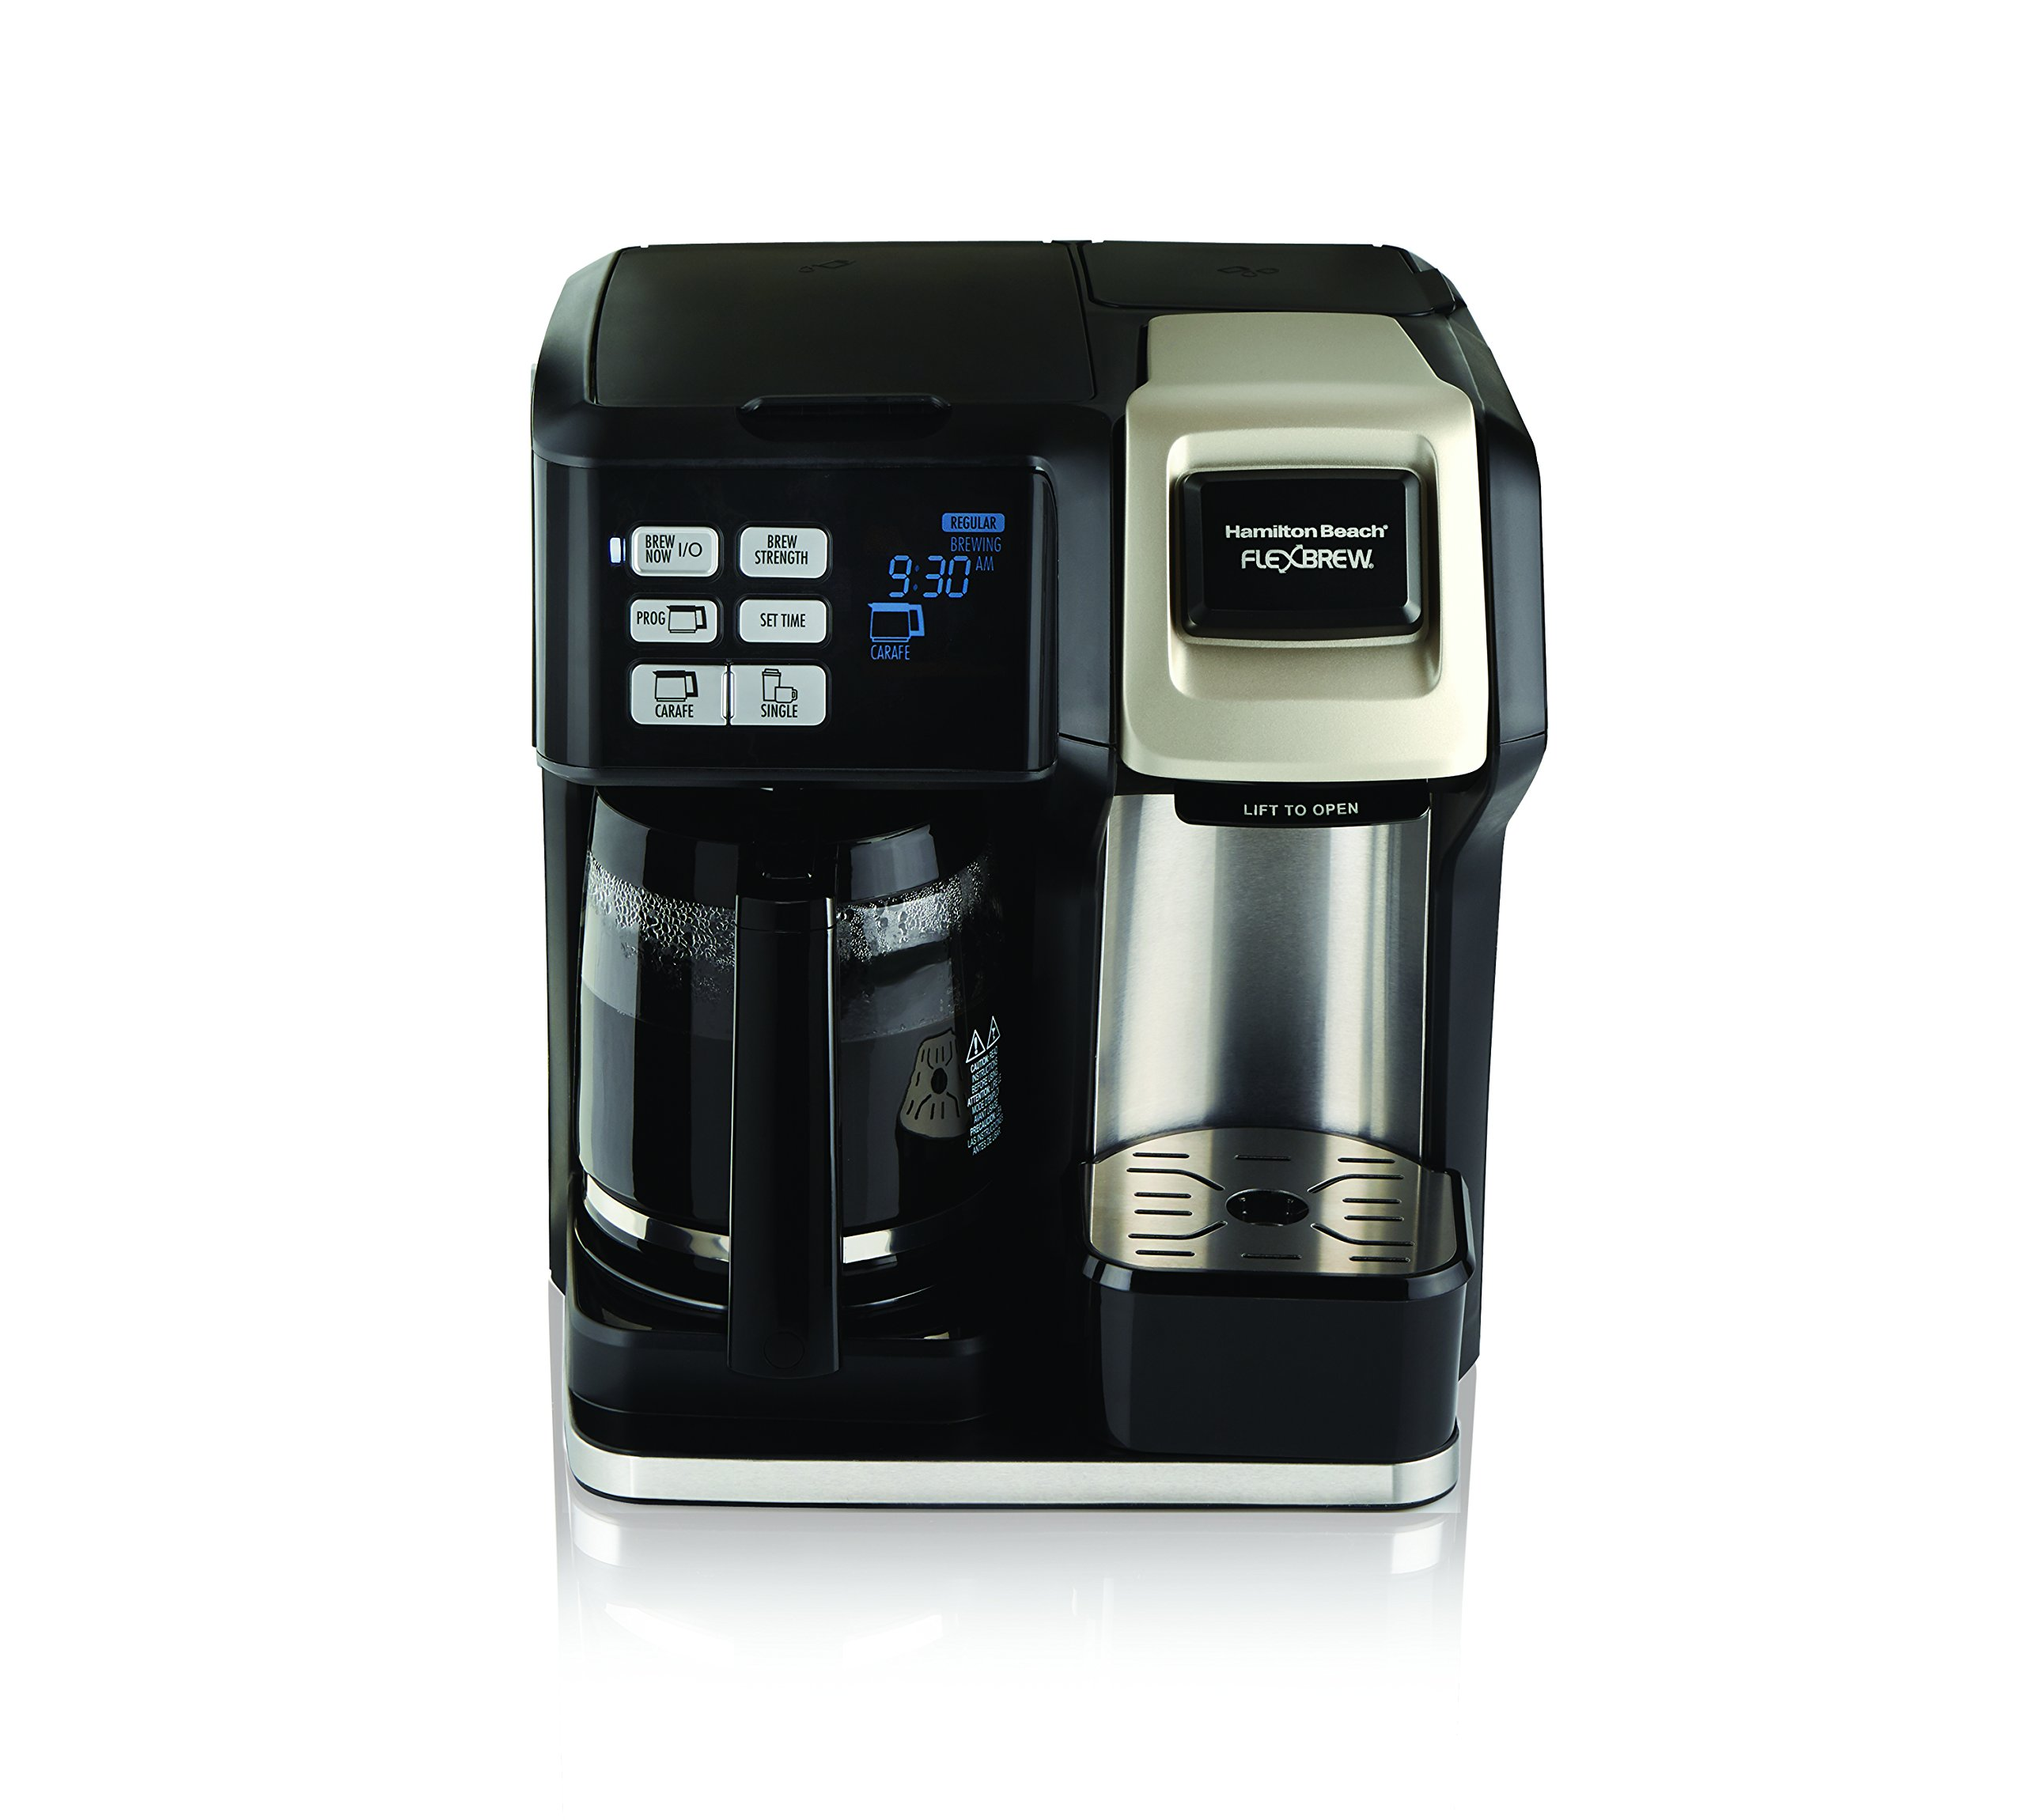 Hamilton Beach 49950C Flexbrew 2-Way Brewer Programmable Coffee Maker, Black by Hamilton Beach